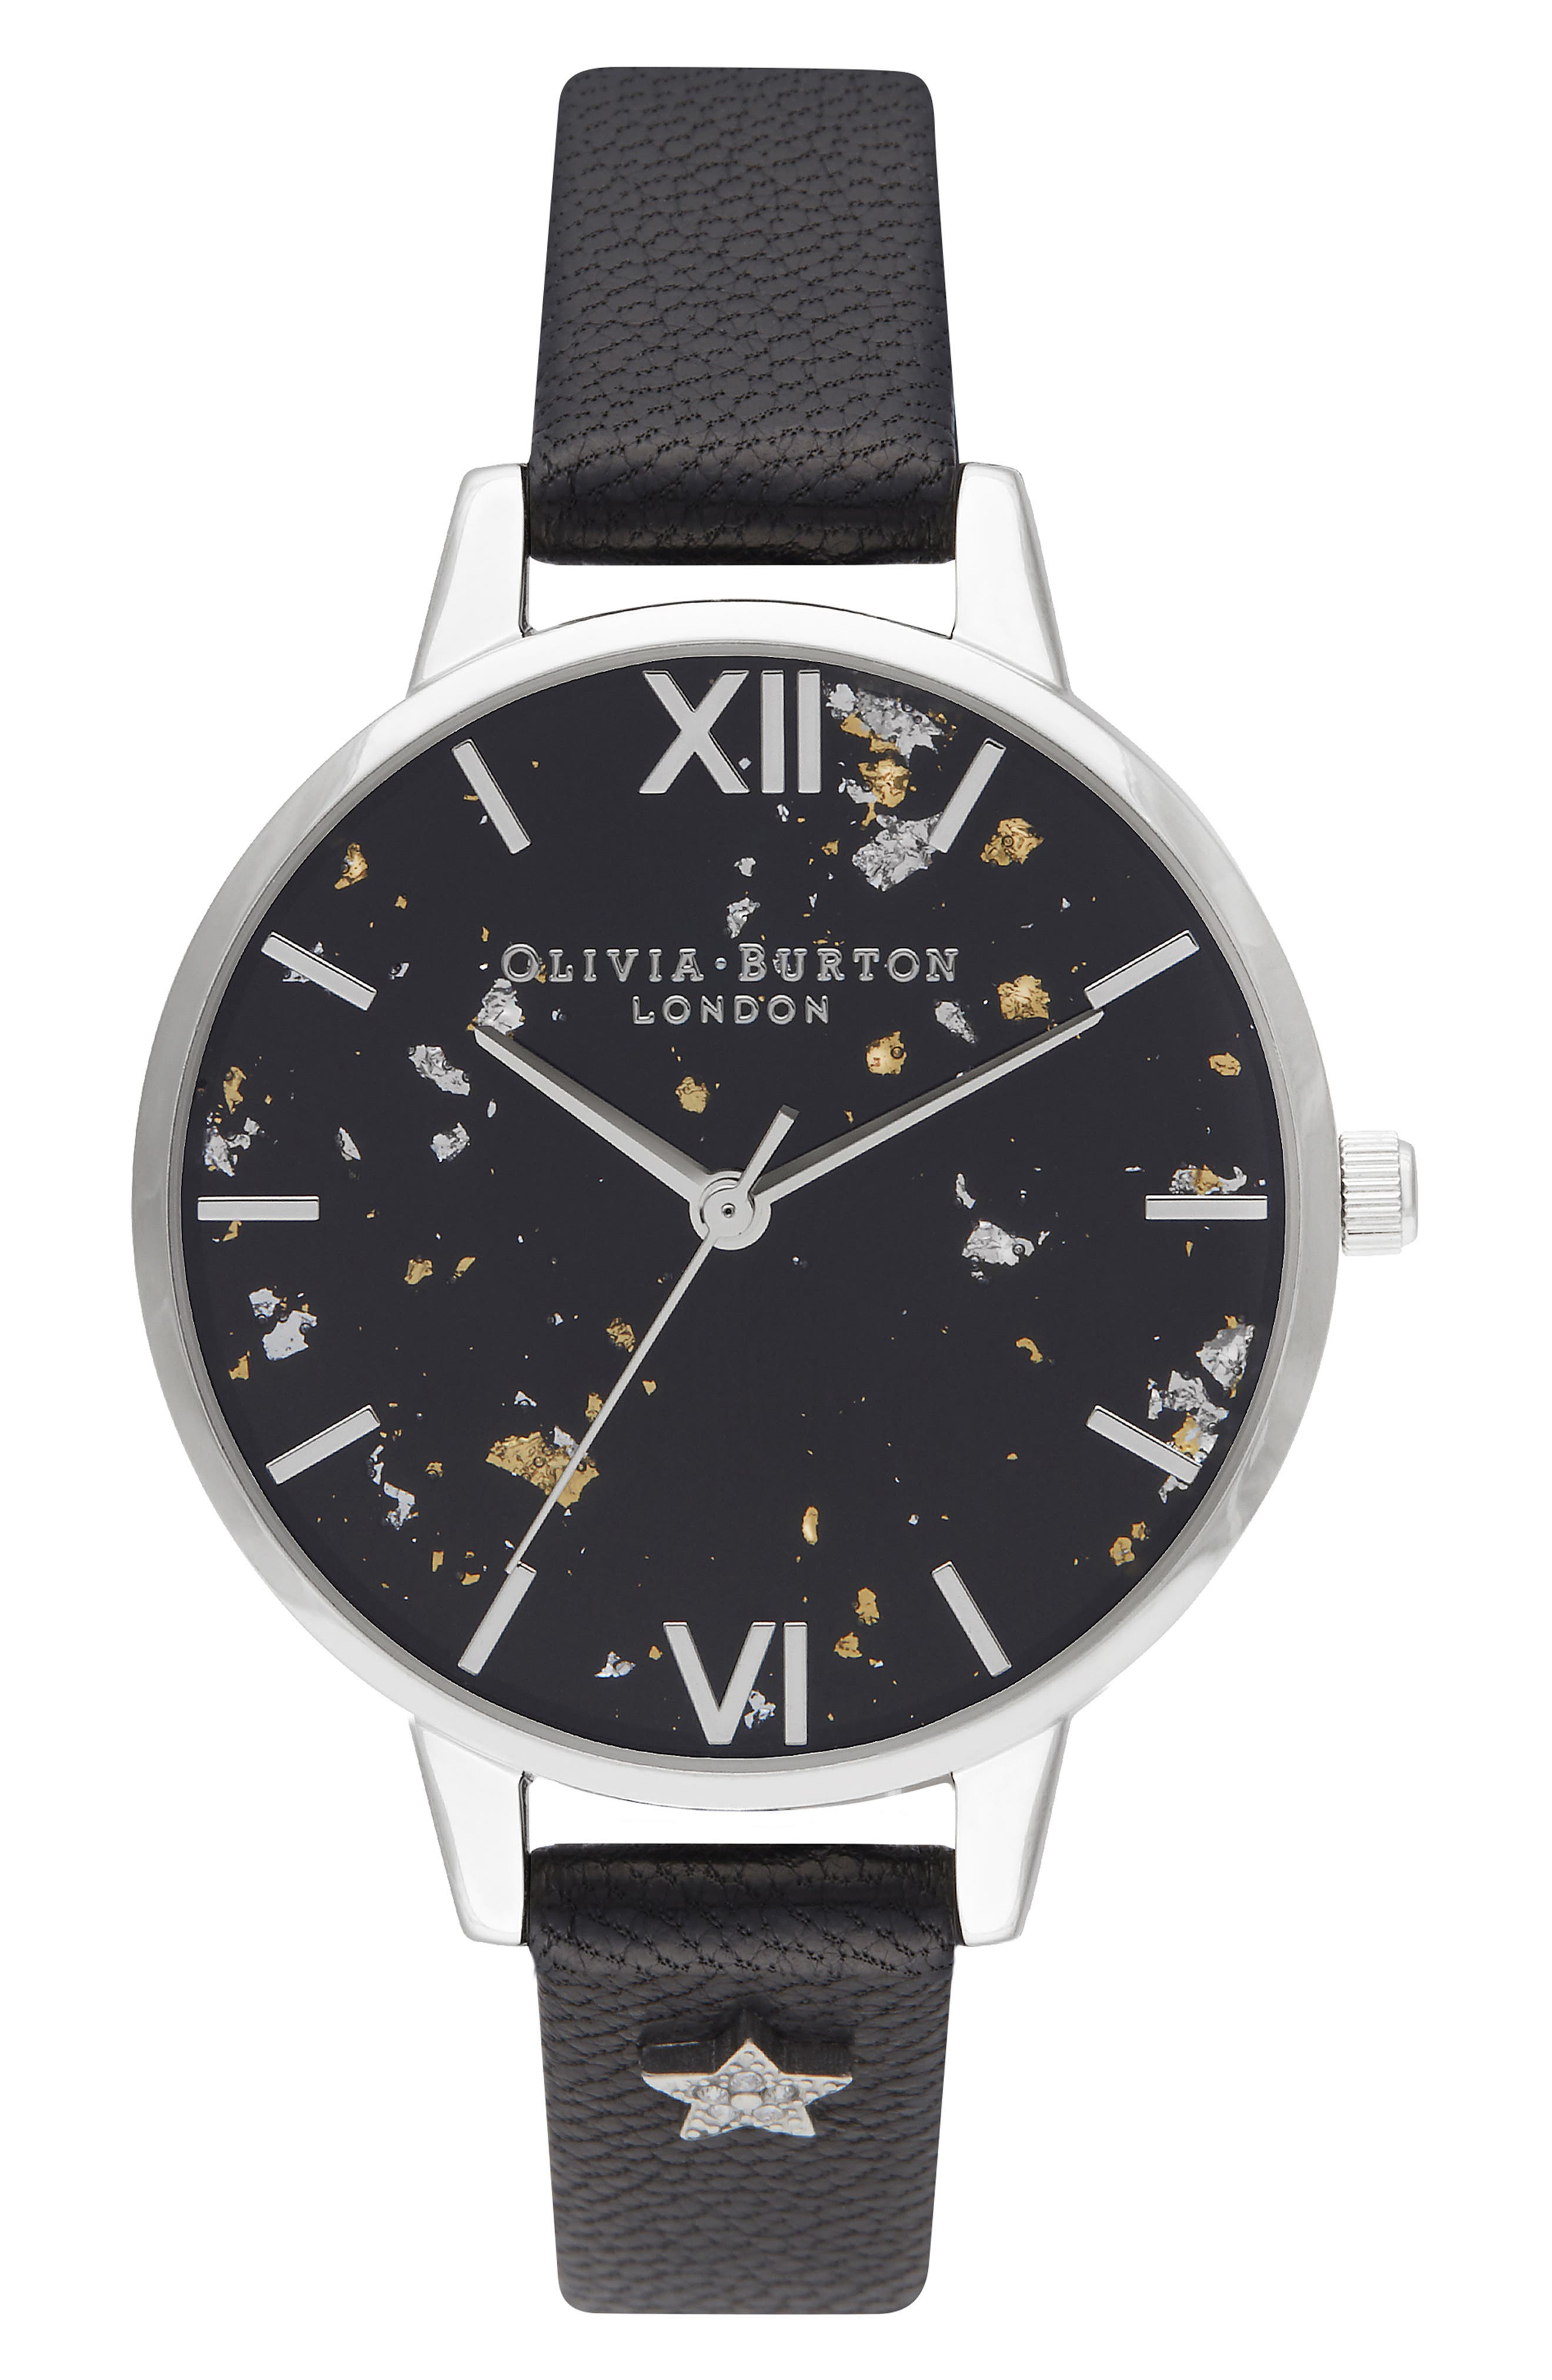 OLIVIA BURTON, Celestial Leather Strap Watch, 34mm, Main thumbnail 1, color, BLACK/ GOLD/ SILVER